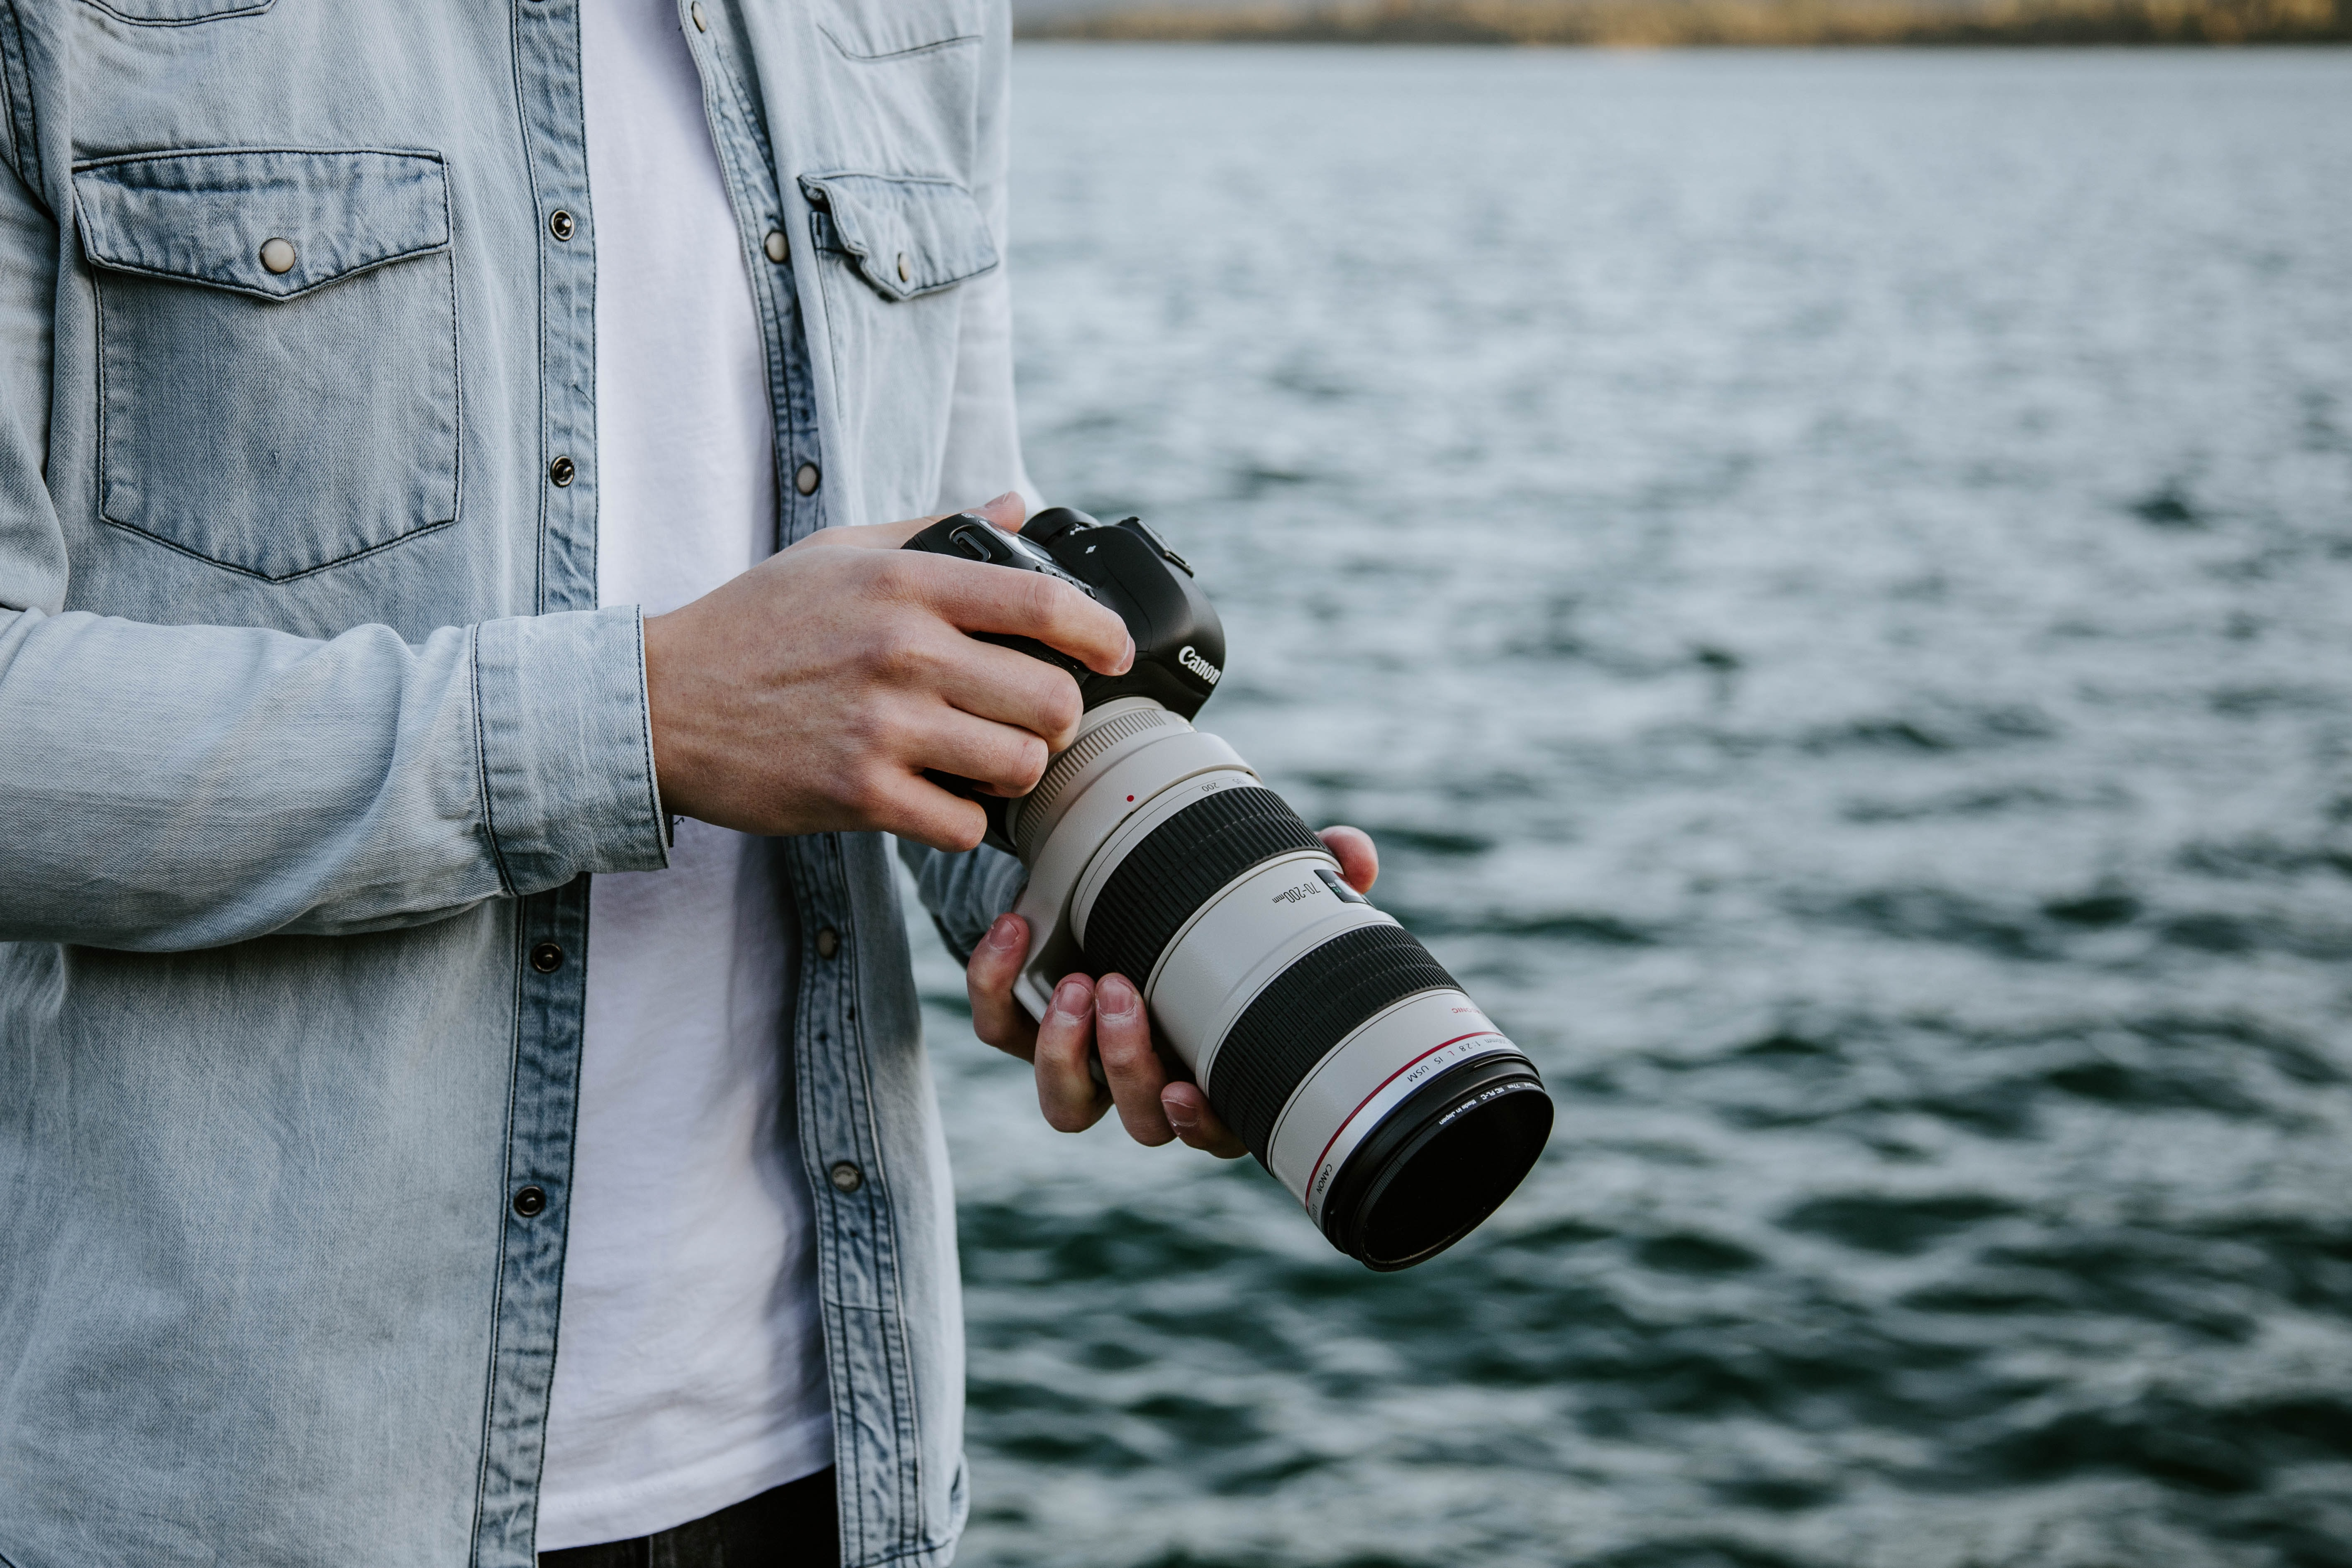 person holding white and black DSLR camera near body of water